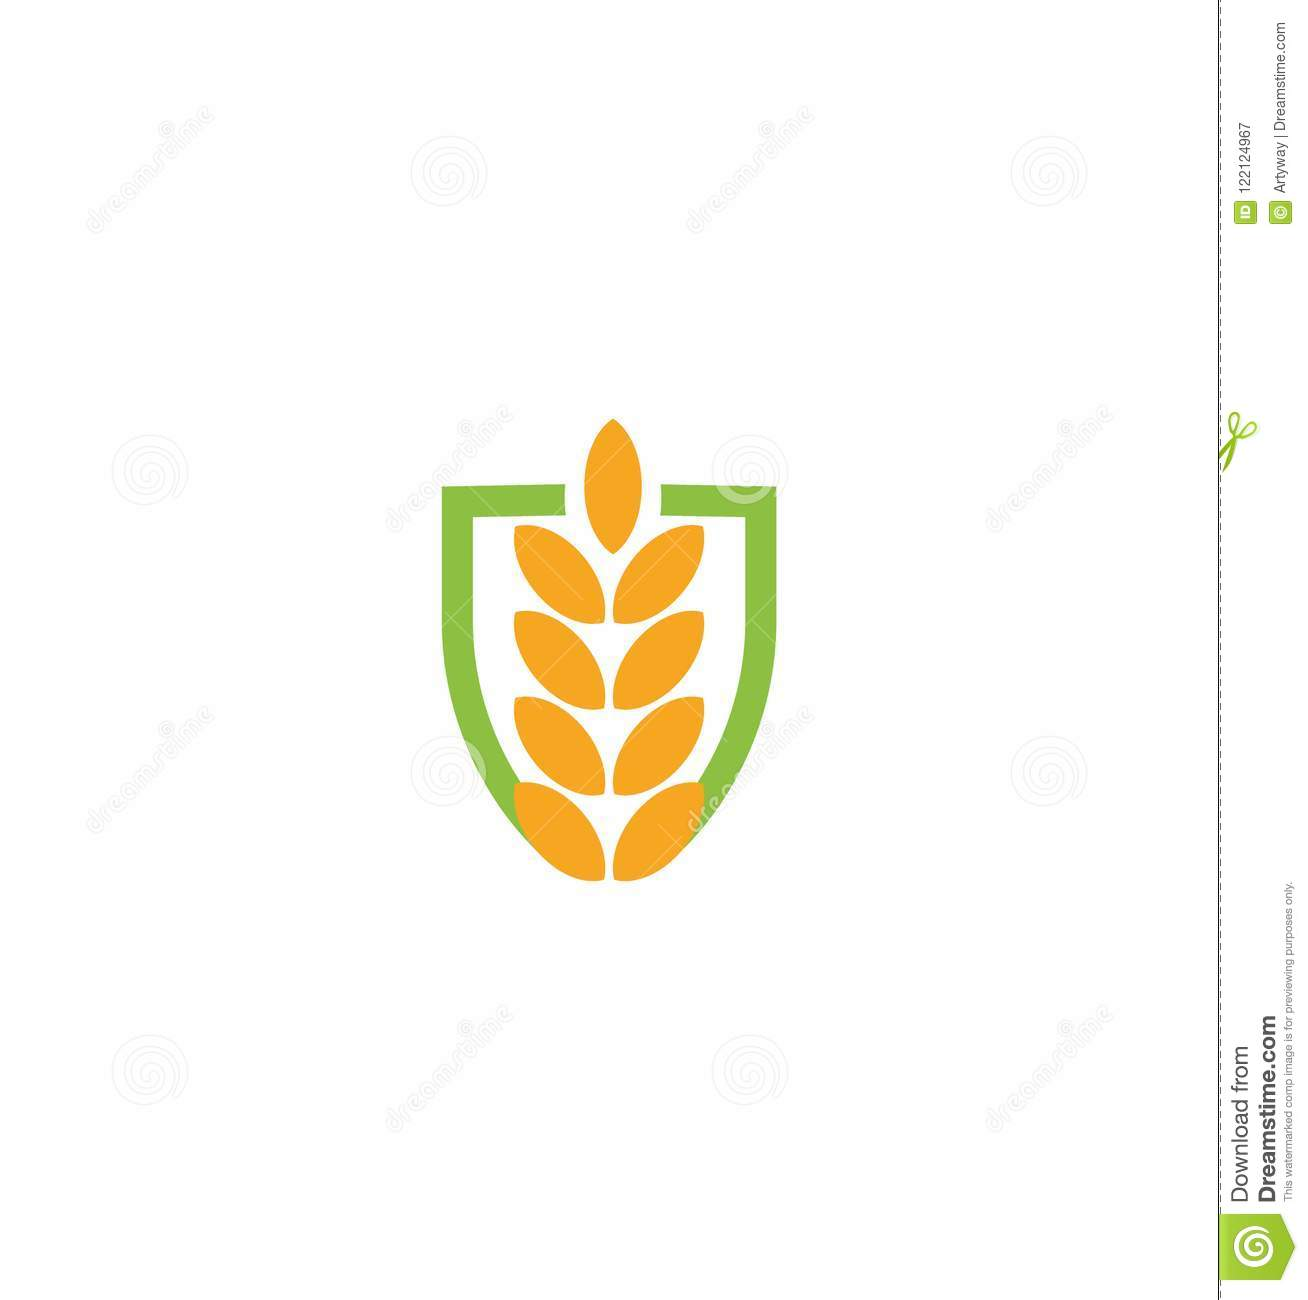 Wheat vector grain icon Isolated abstract orange color wheat ear hearldic logo. Nature element logotype. Agricultural